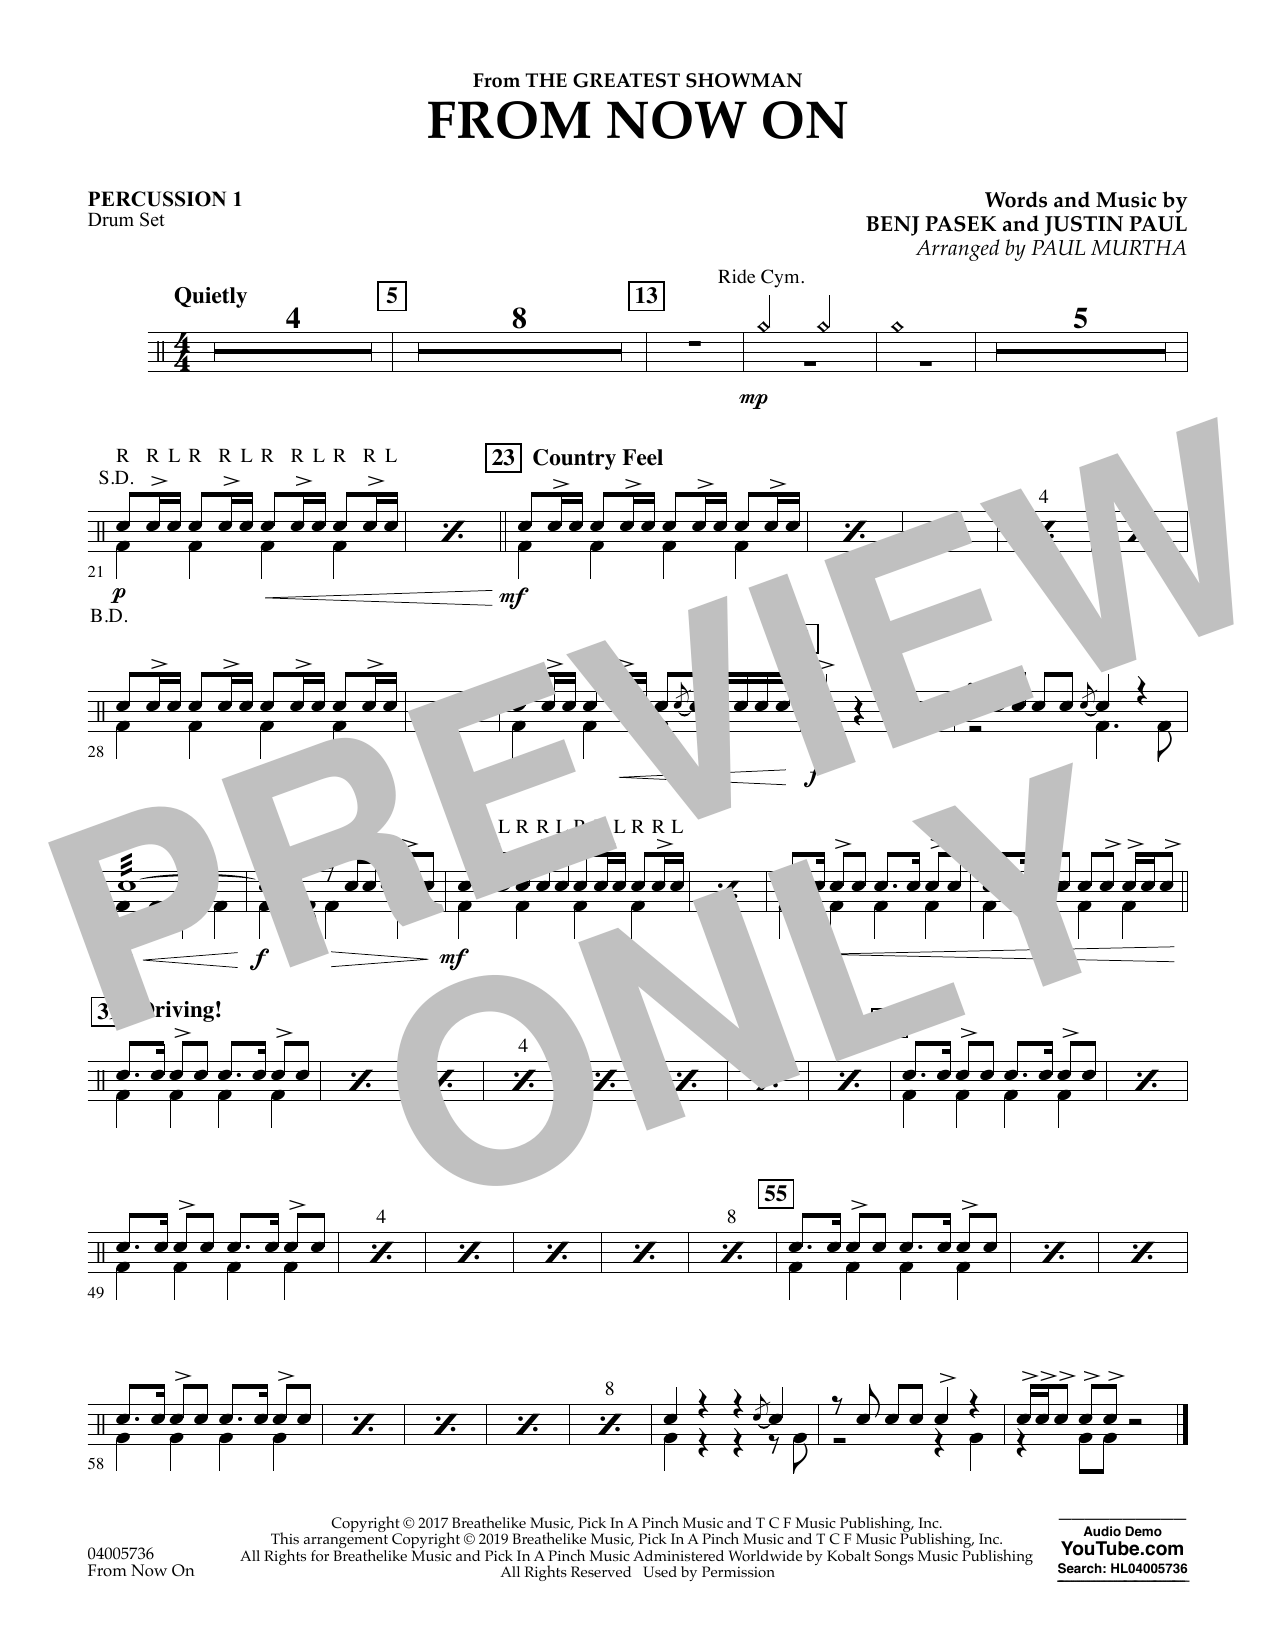 From Now On (from The Greatest Showman) (arr. Paul Murtha) - Percussion 1 (Concert Band)